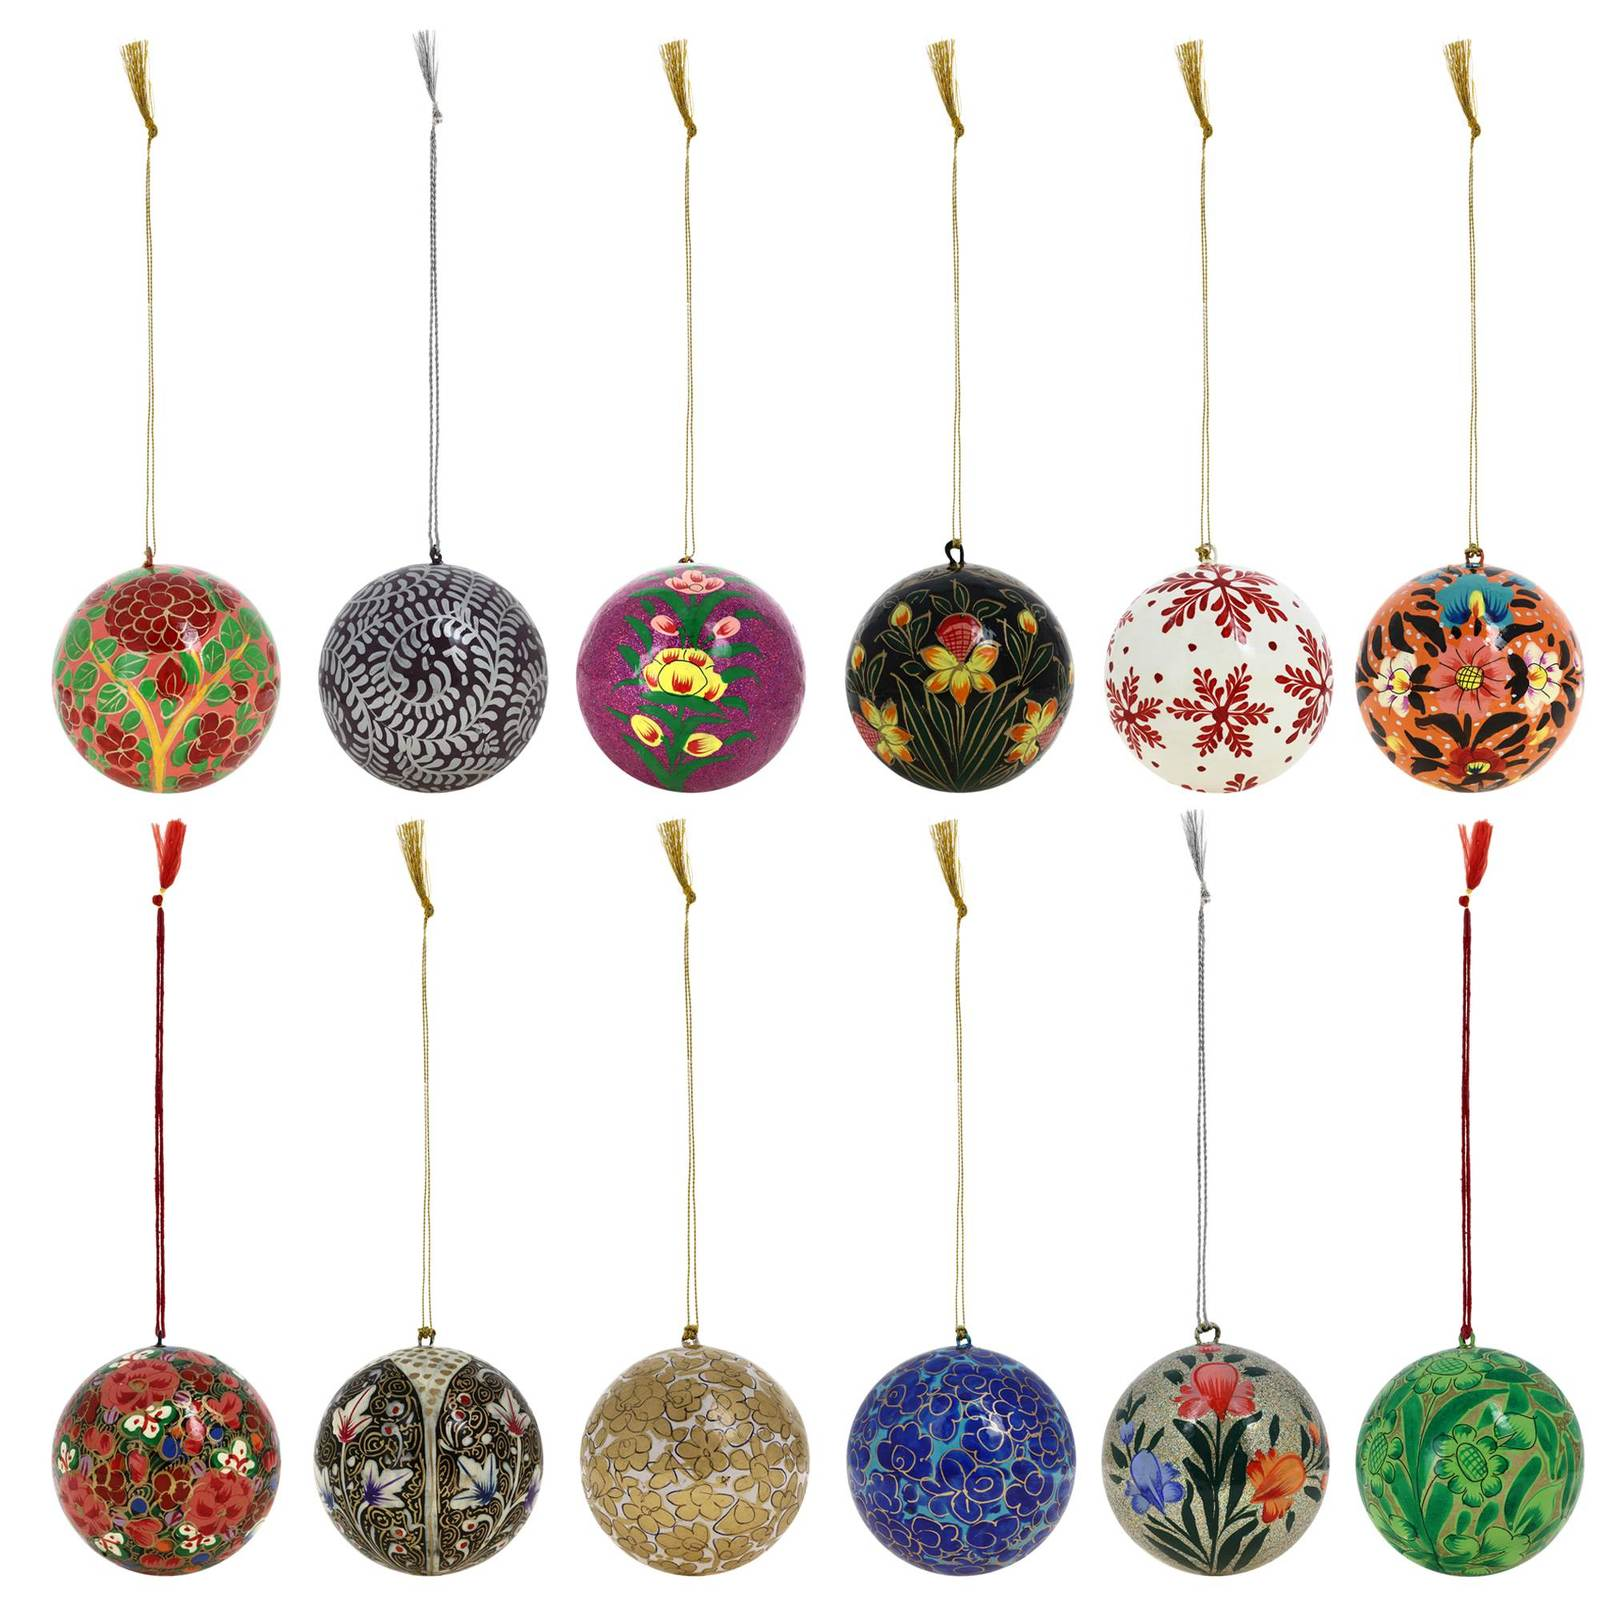 Decoration christmas ornaments handmade paper mache hanging balls set of 12 ornaments - Hanging paper balls decorations ...